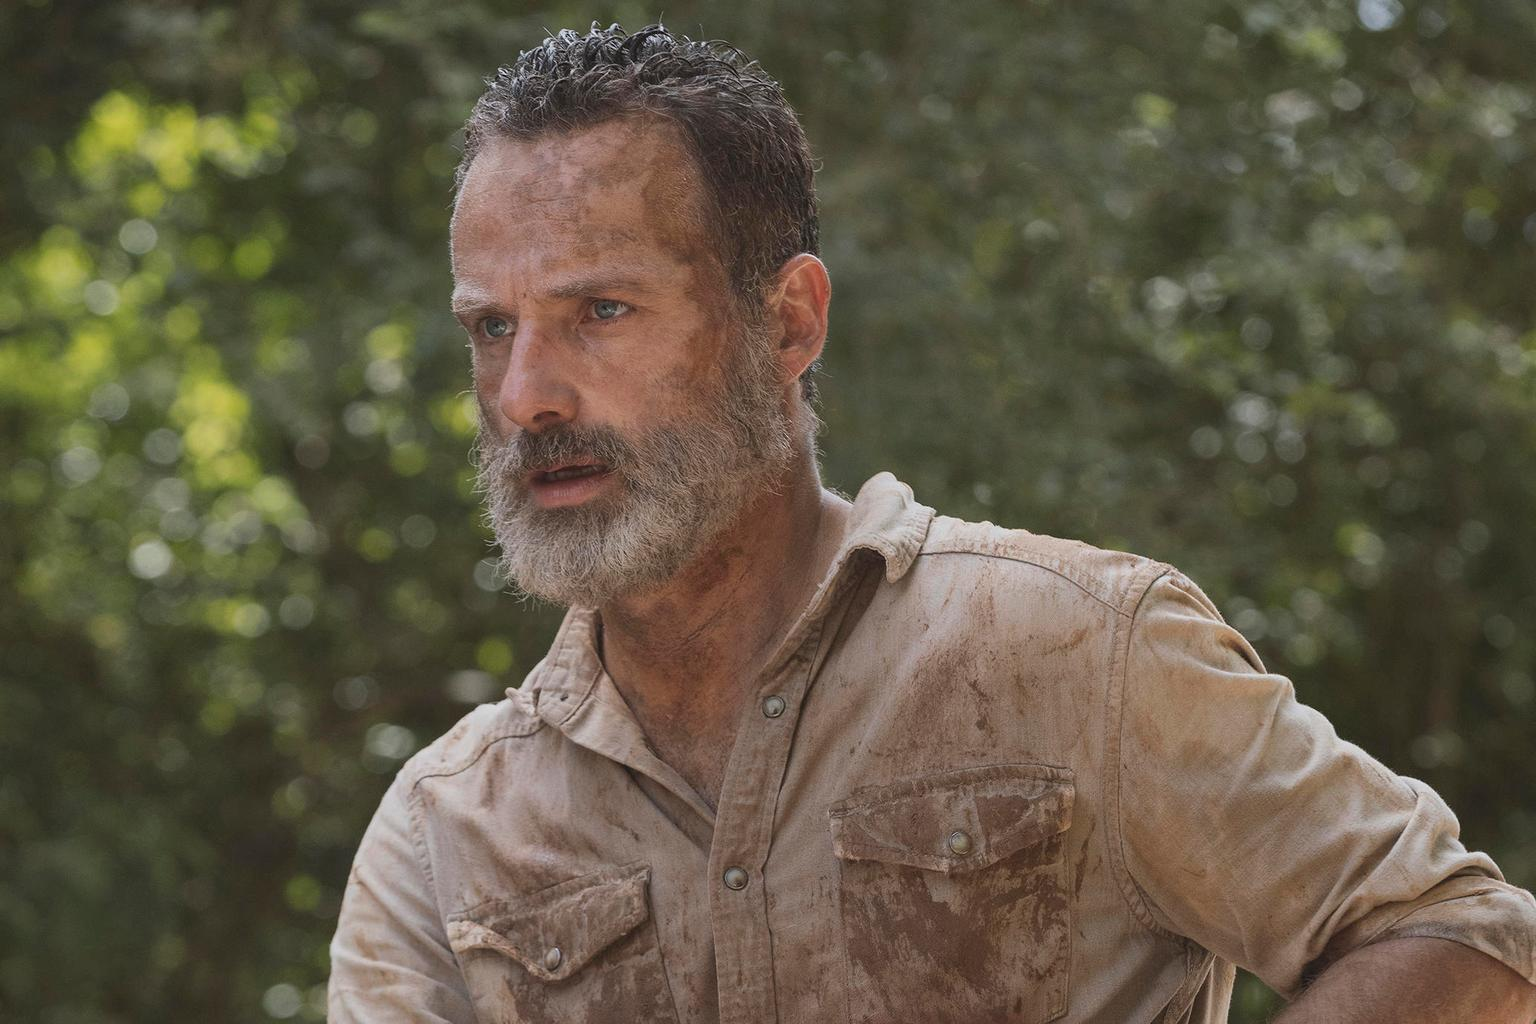 Tenth season Walking Dead 2019 on TV to start in October